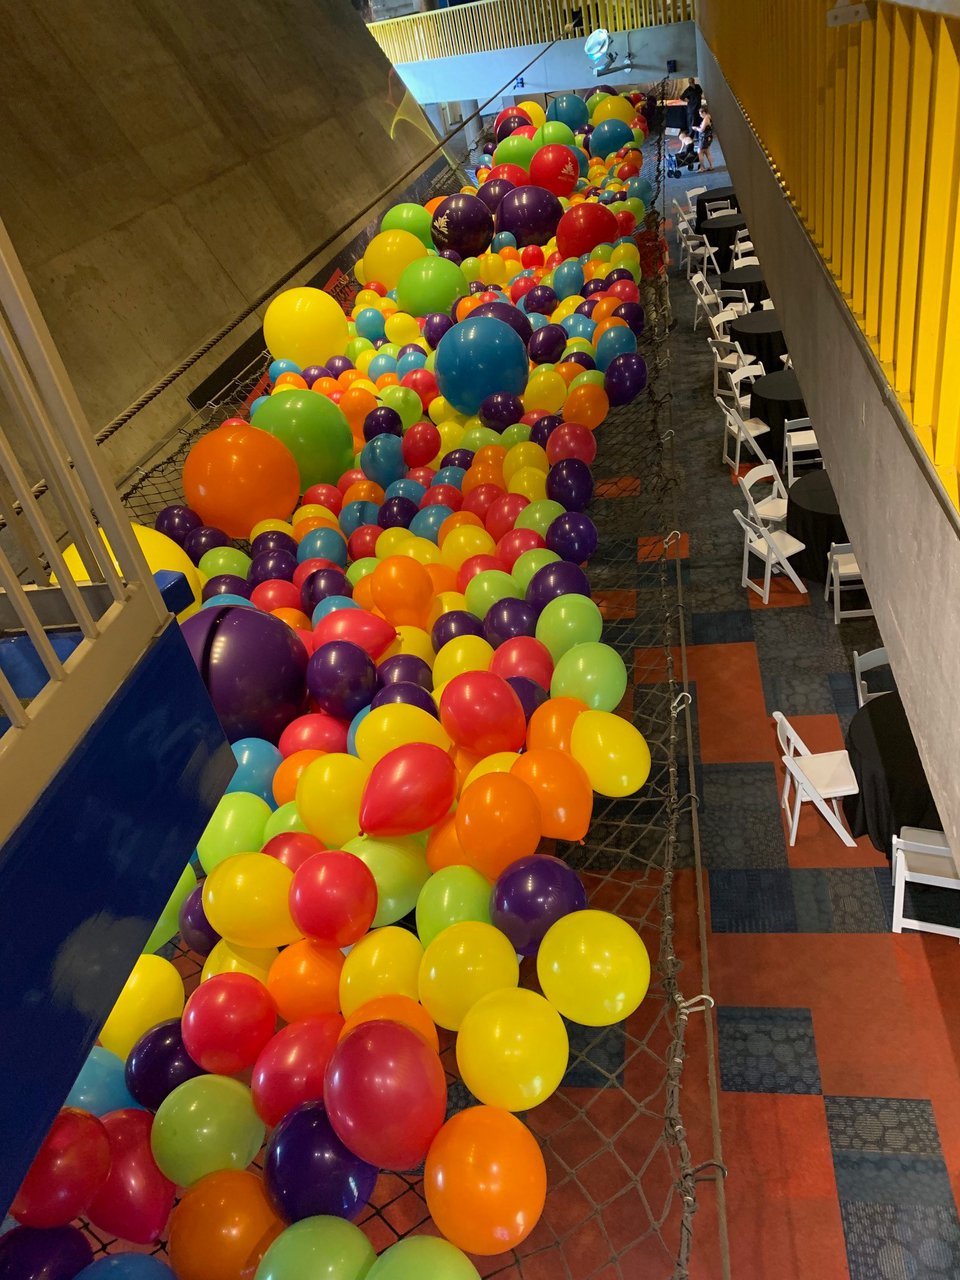 Employee Back to School Drive photo science center balloons in net.jpg